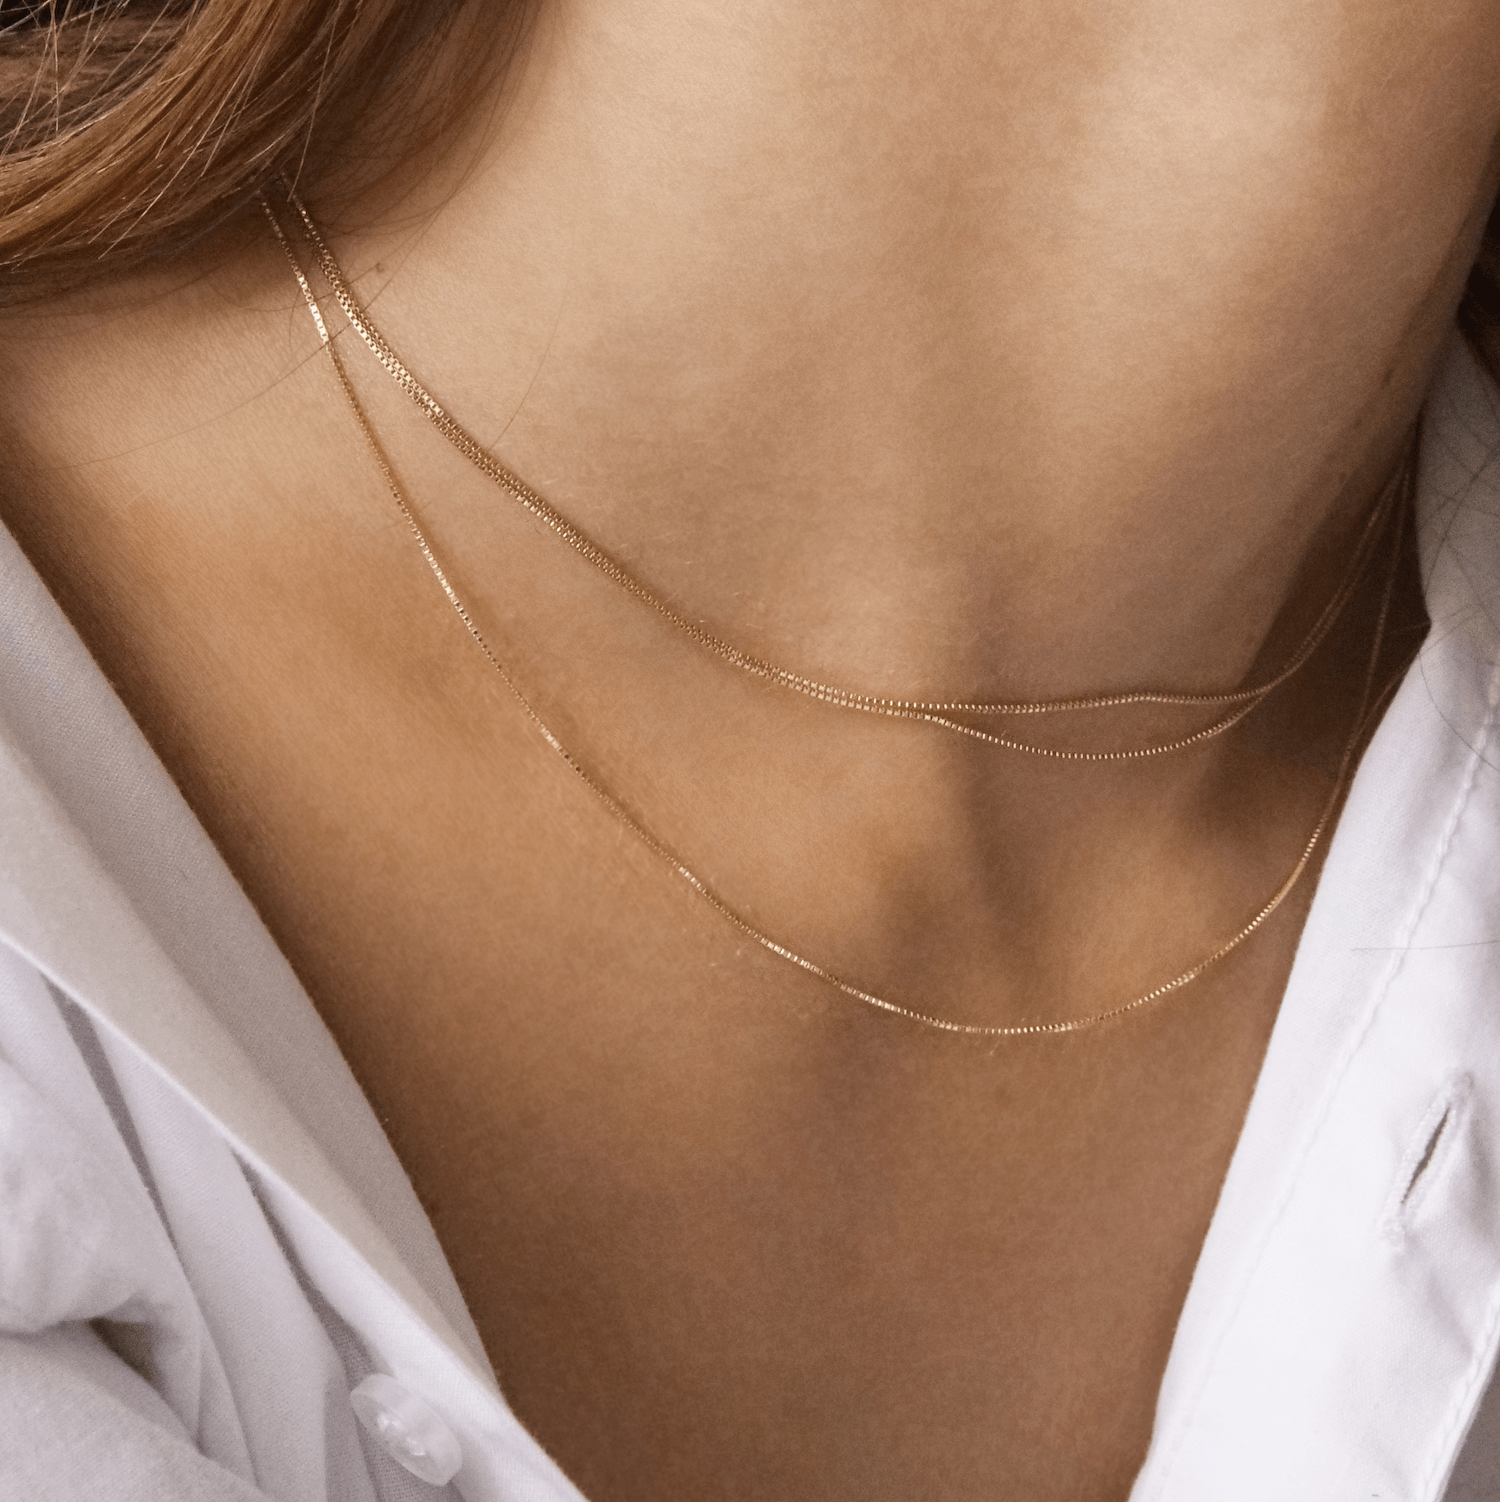 Jules Chain14k White Gold 24 In 2021 Delicate Gold Necklace Minimalist Earrings Gold Gold Diamond Necklace